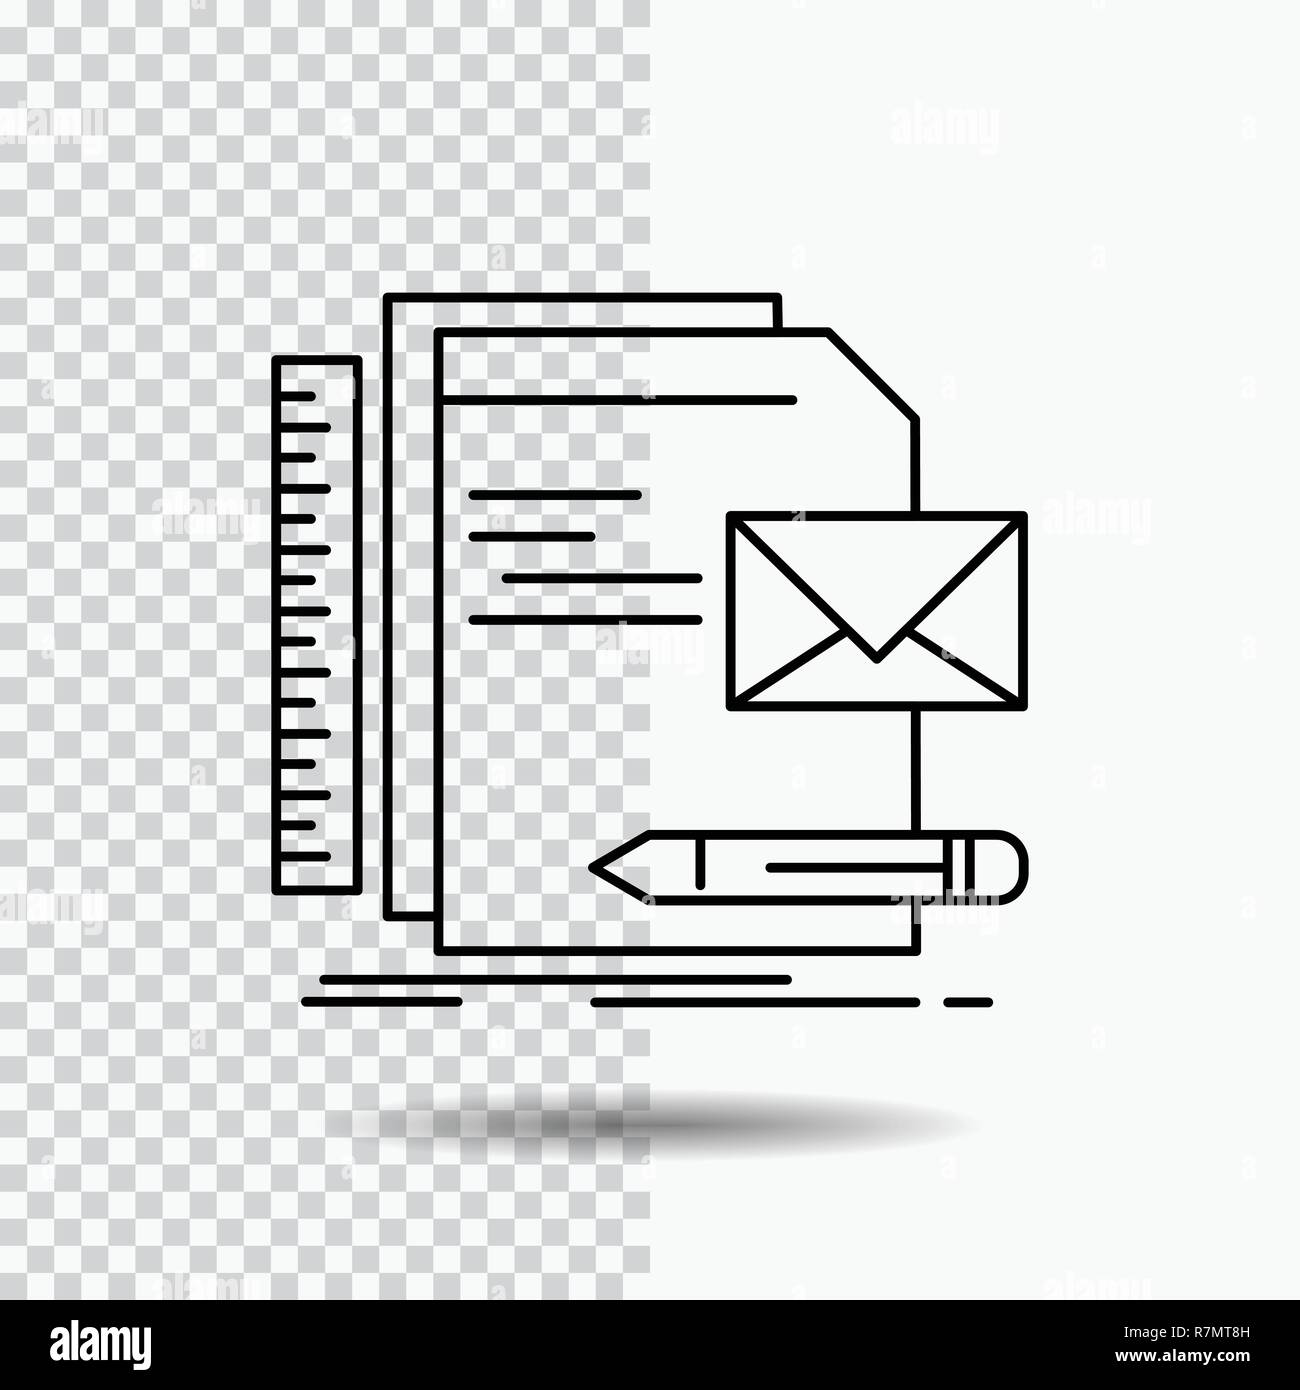 brand company identity letter presentation line icon on transparent background black icon vector illustration stock vector image art alamy alamy